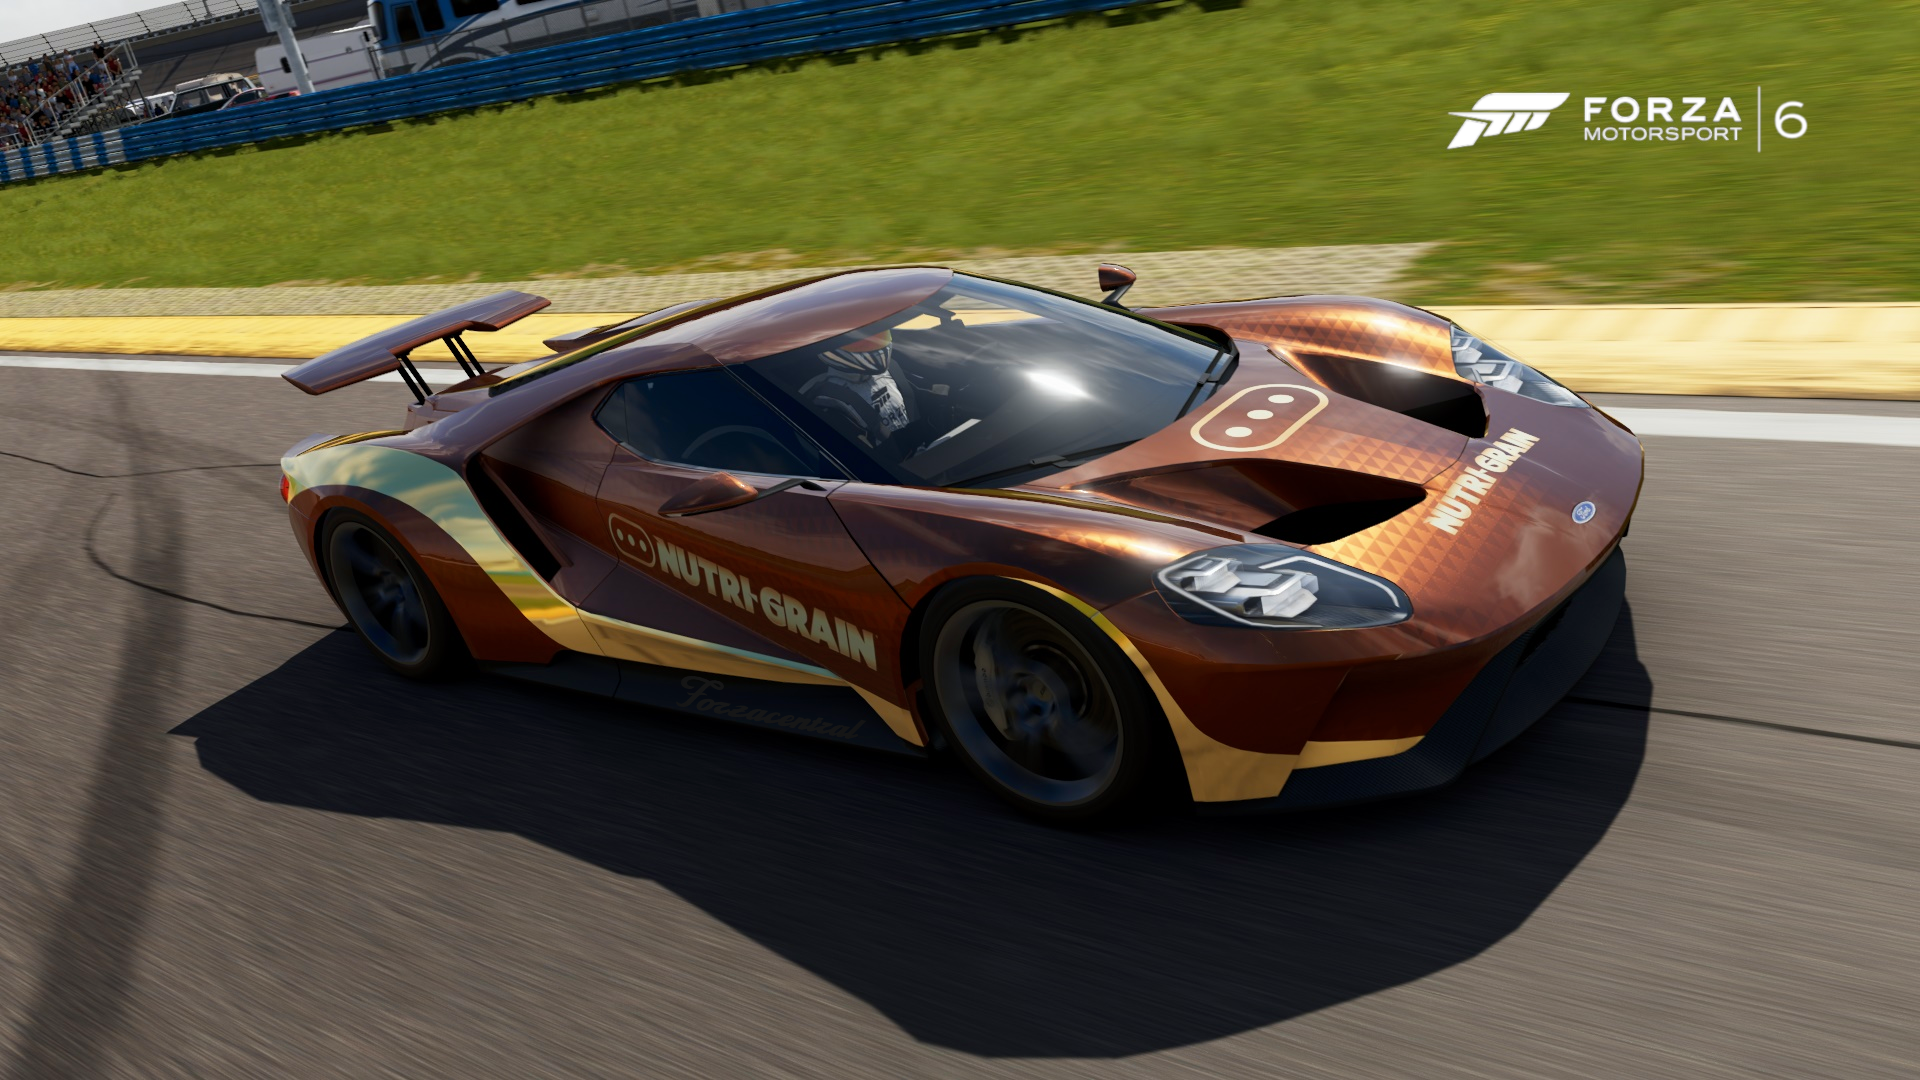 Ford Gt Nutri Grain Edition Forza  Discussion Forza Motorsport Forums